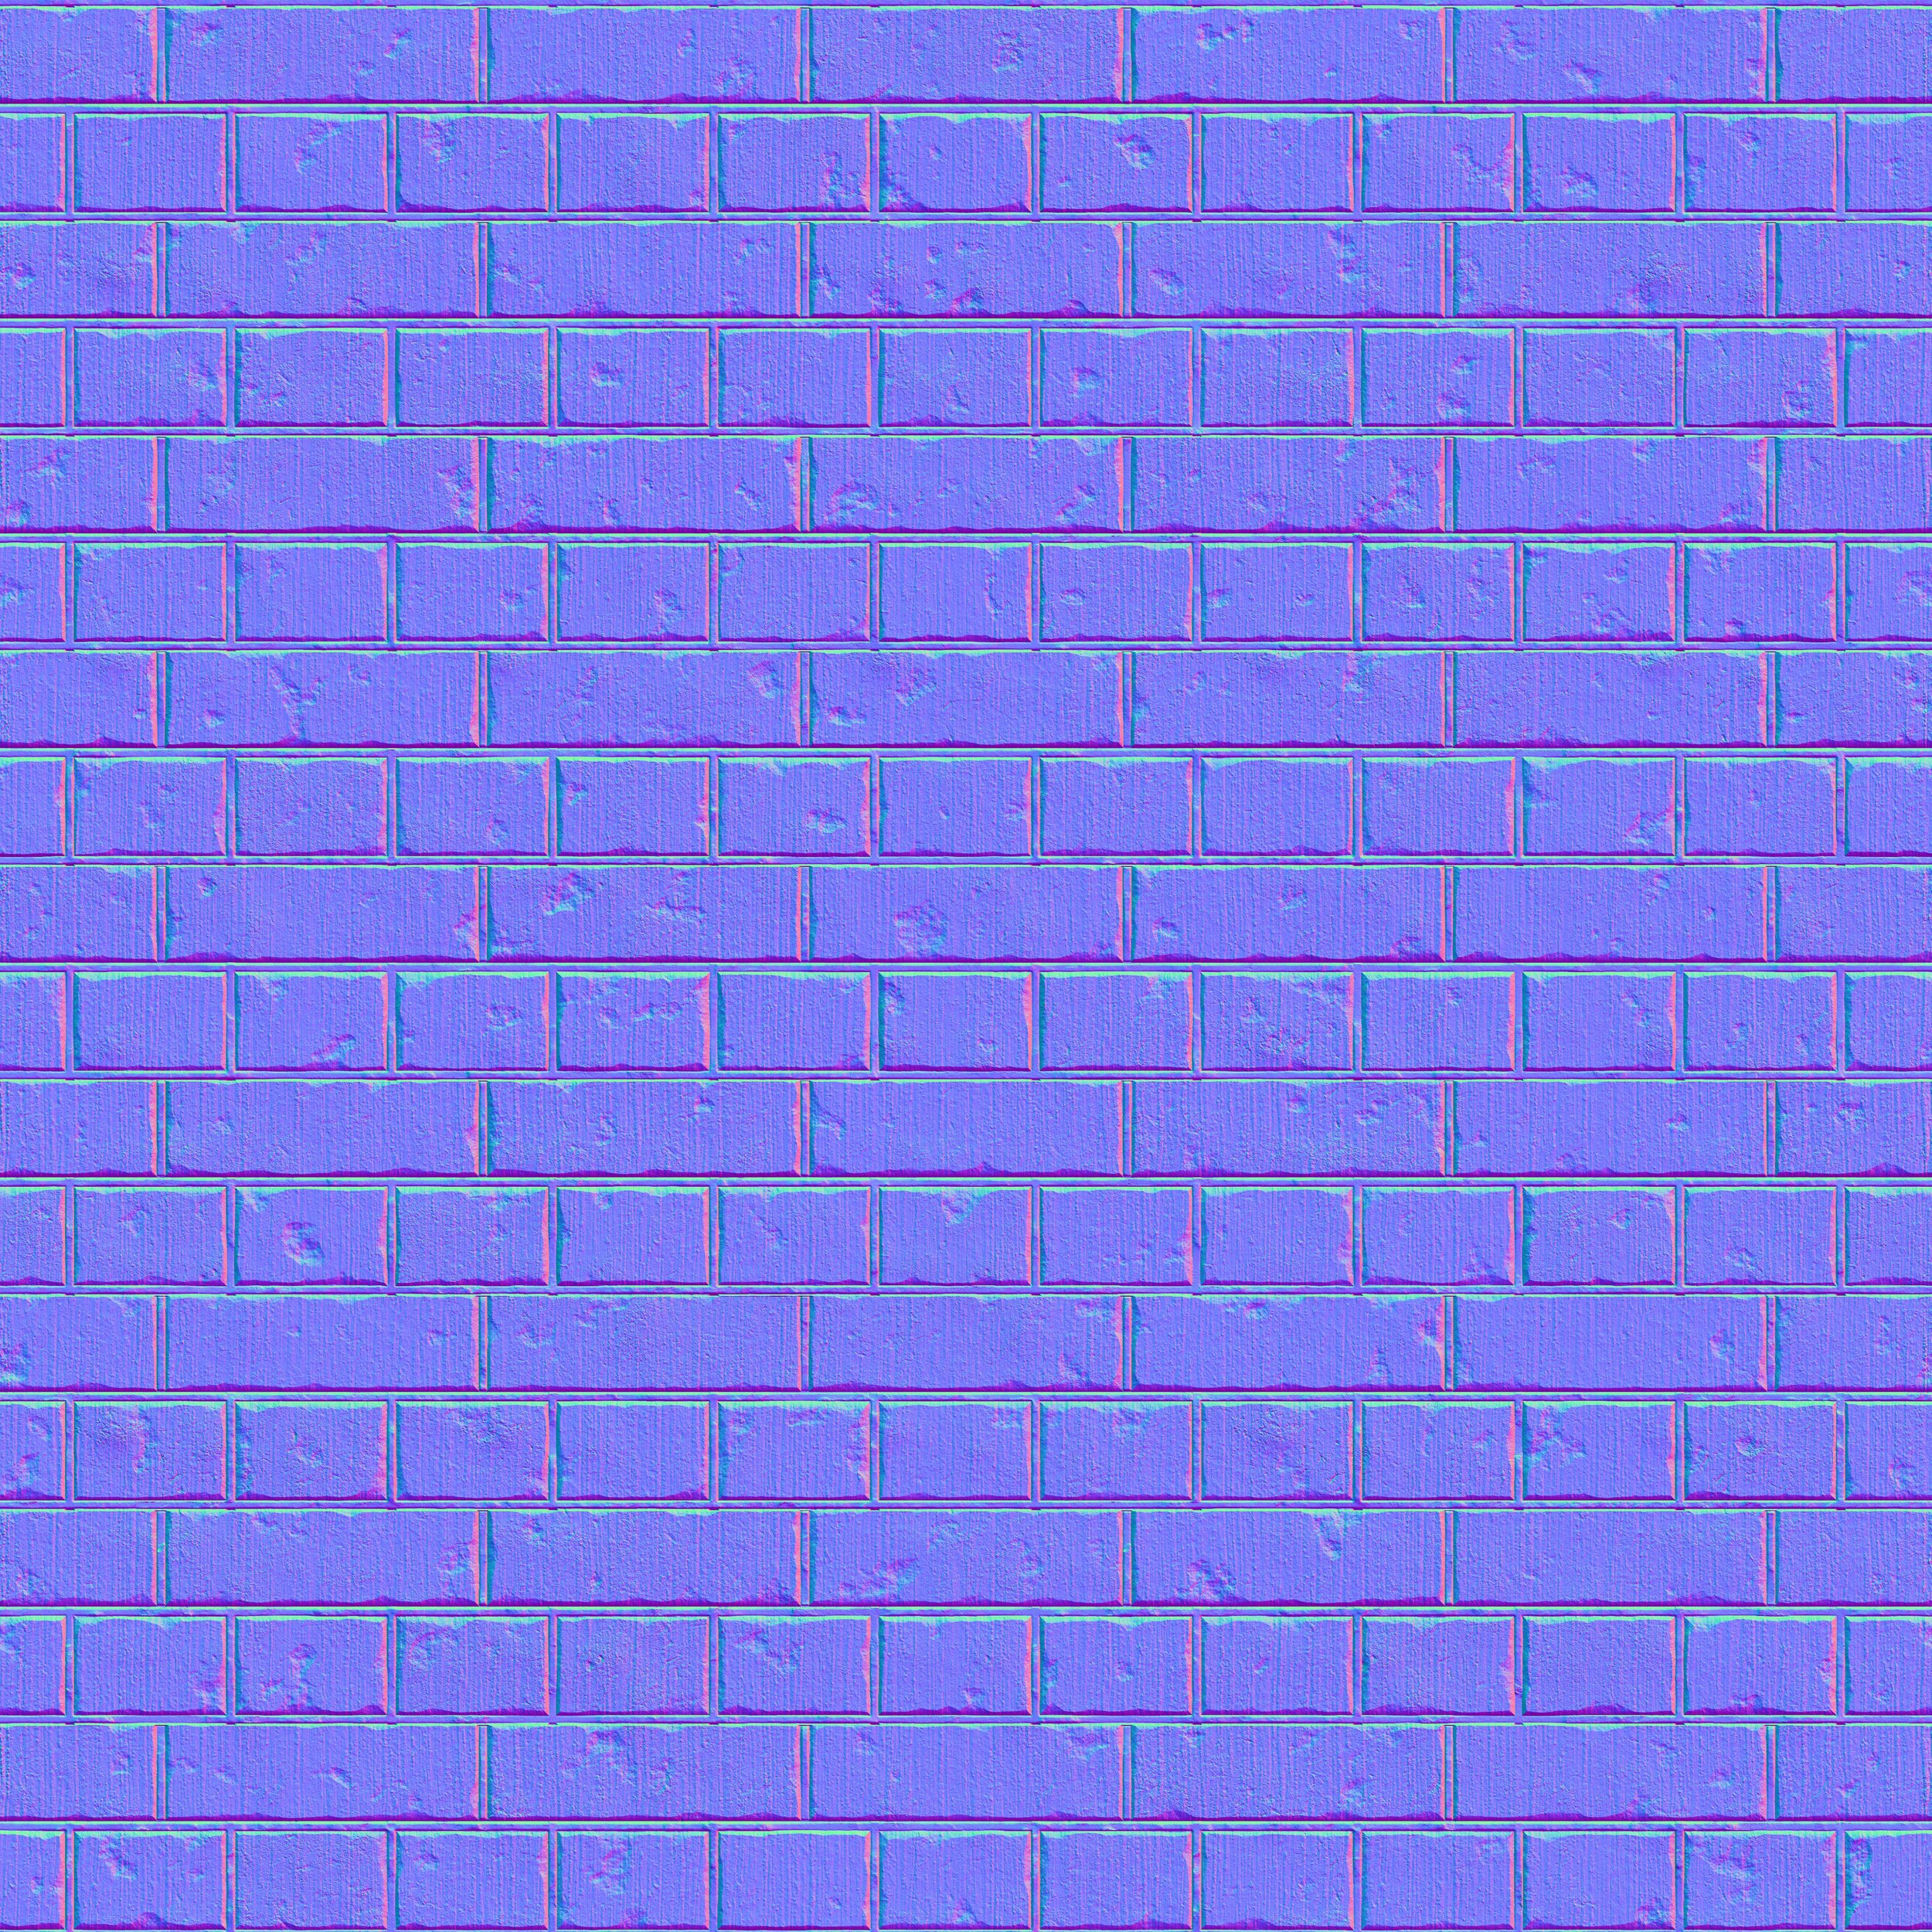 Bricks_AI_01C_White_NRM.jpg